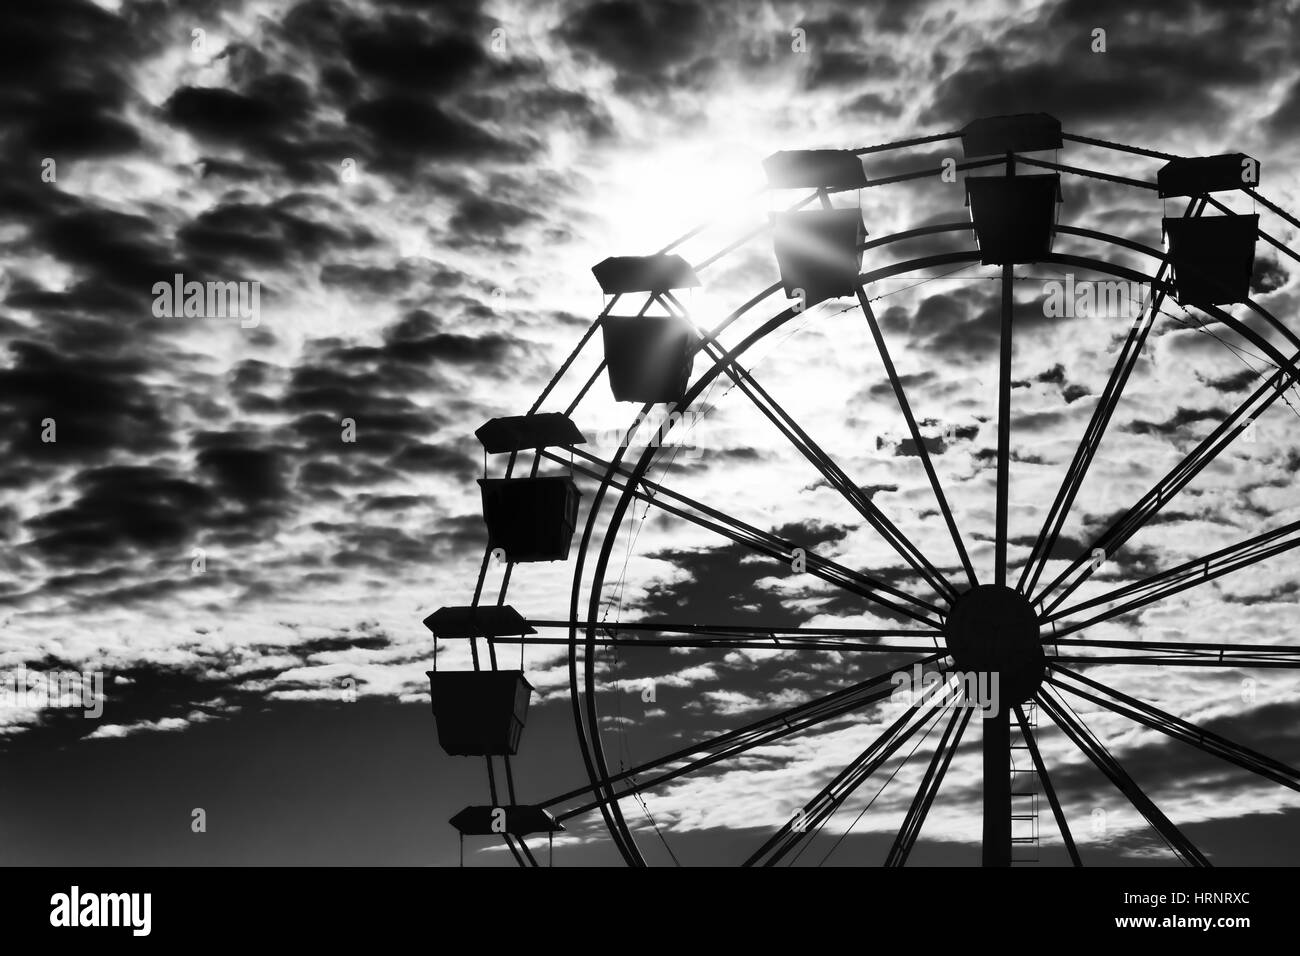 Ferris wheel silhouetted against an intense sky. - Stock Image